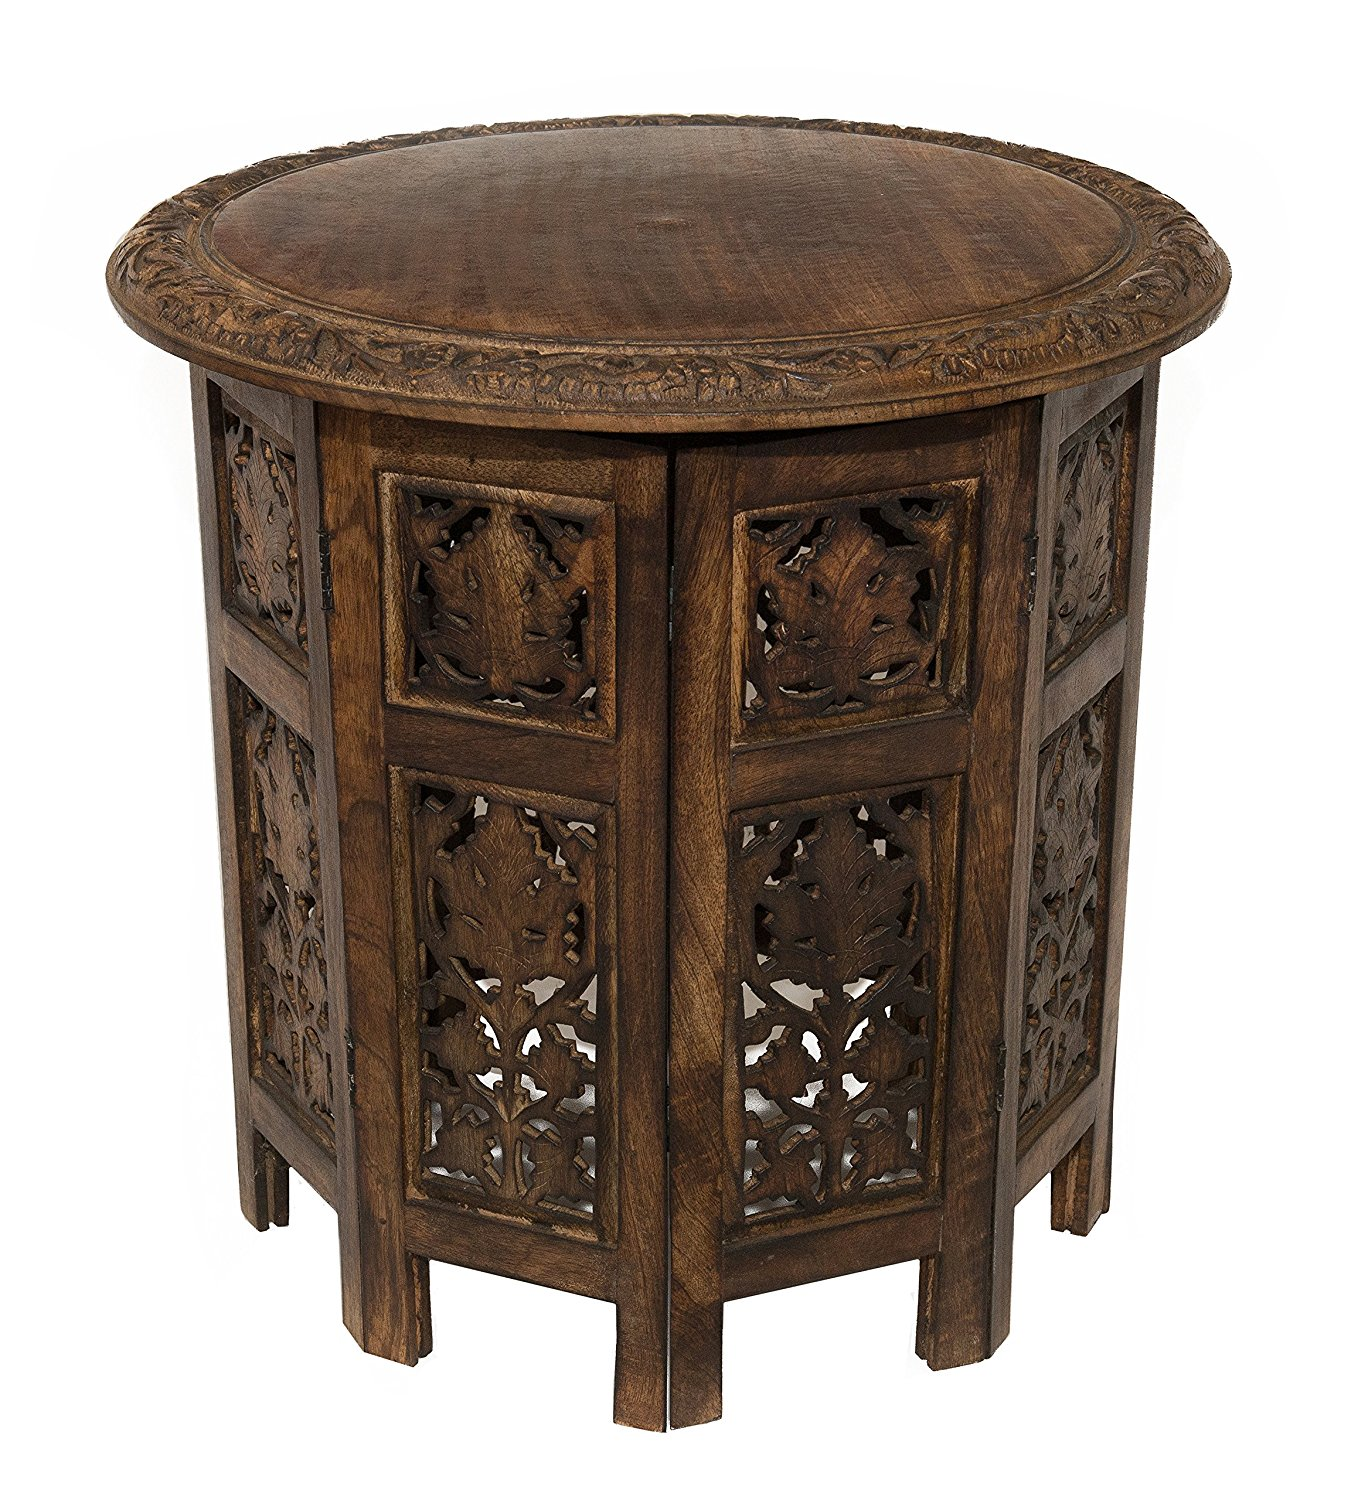 lovely small accent table for ornate extra tall wooden round inexpensive console pottery barn farm tables and chairs corner nest ceiling lamp shades futon covers bath beyond slim